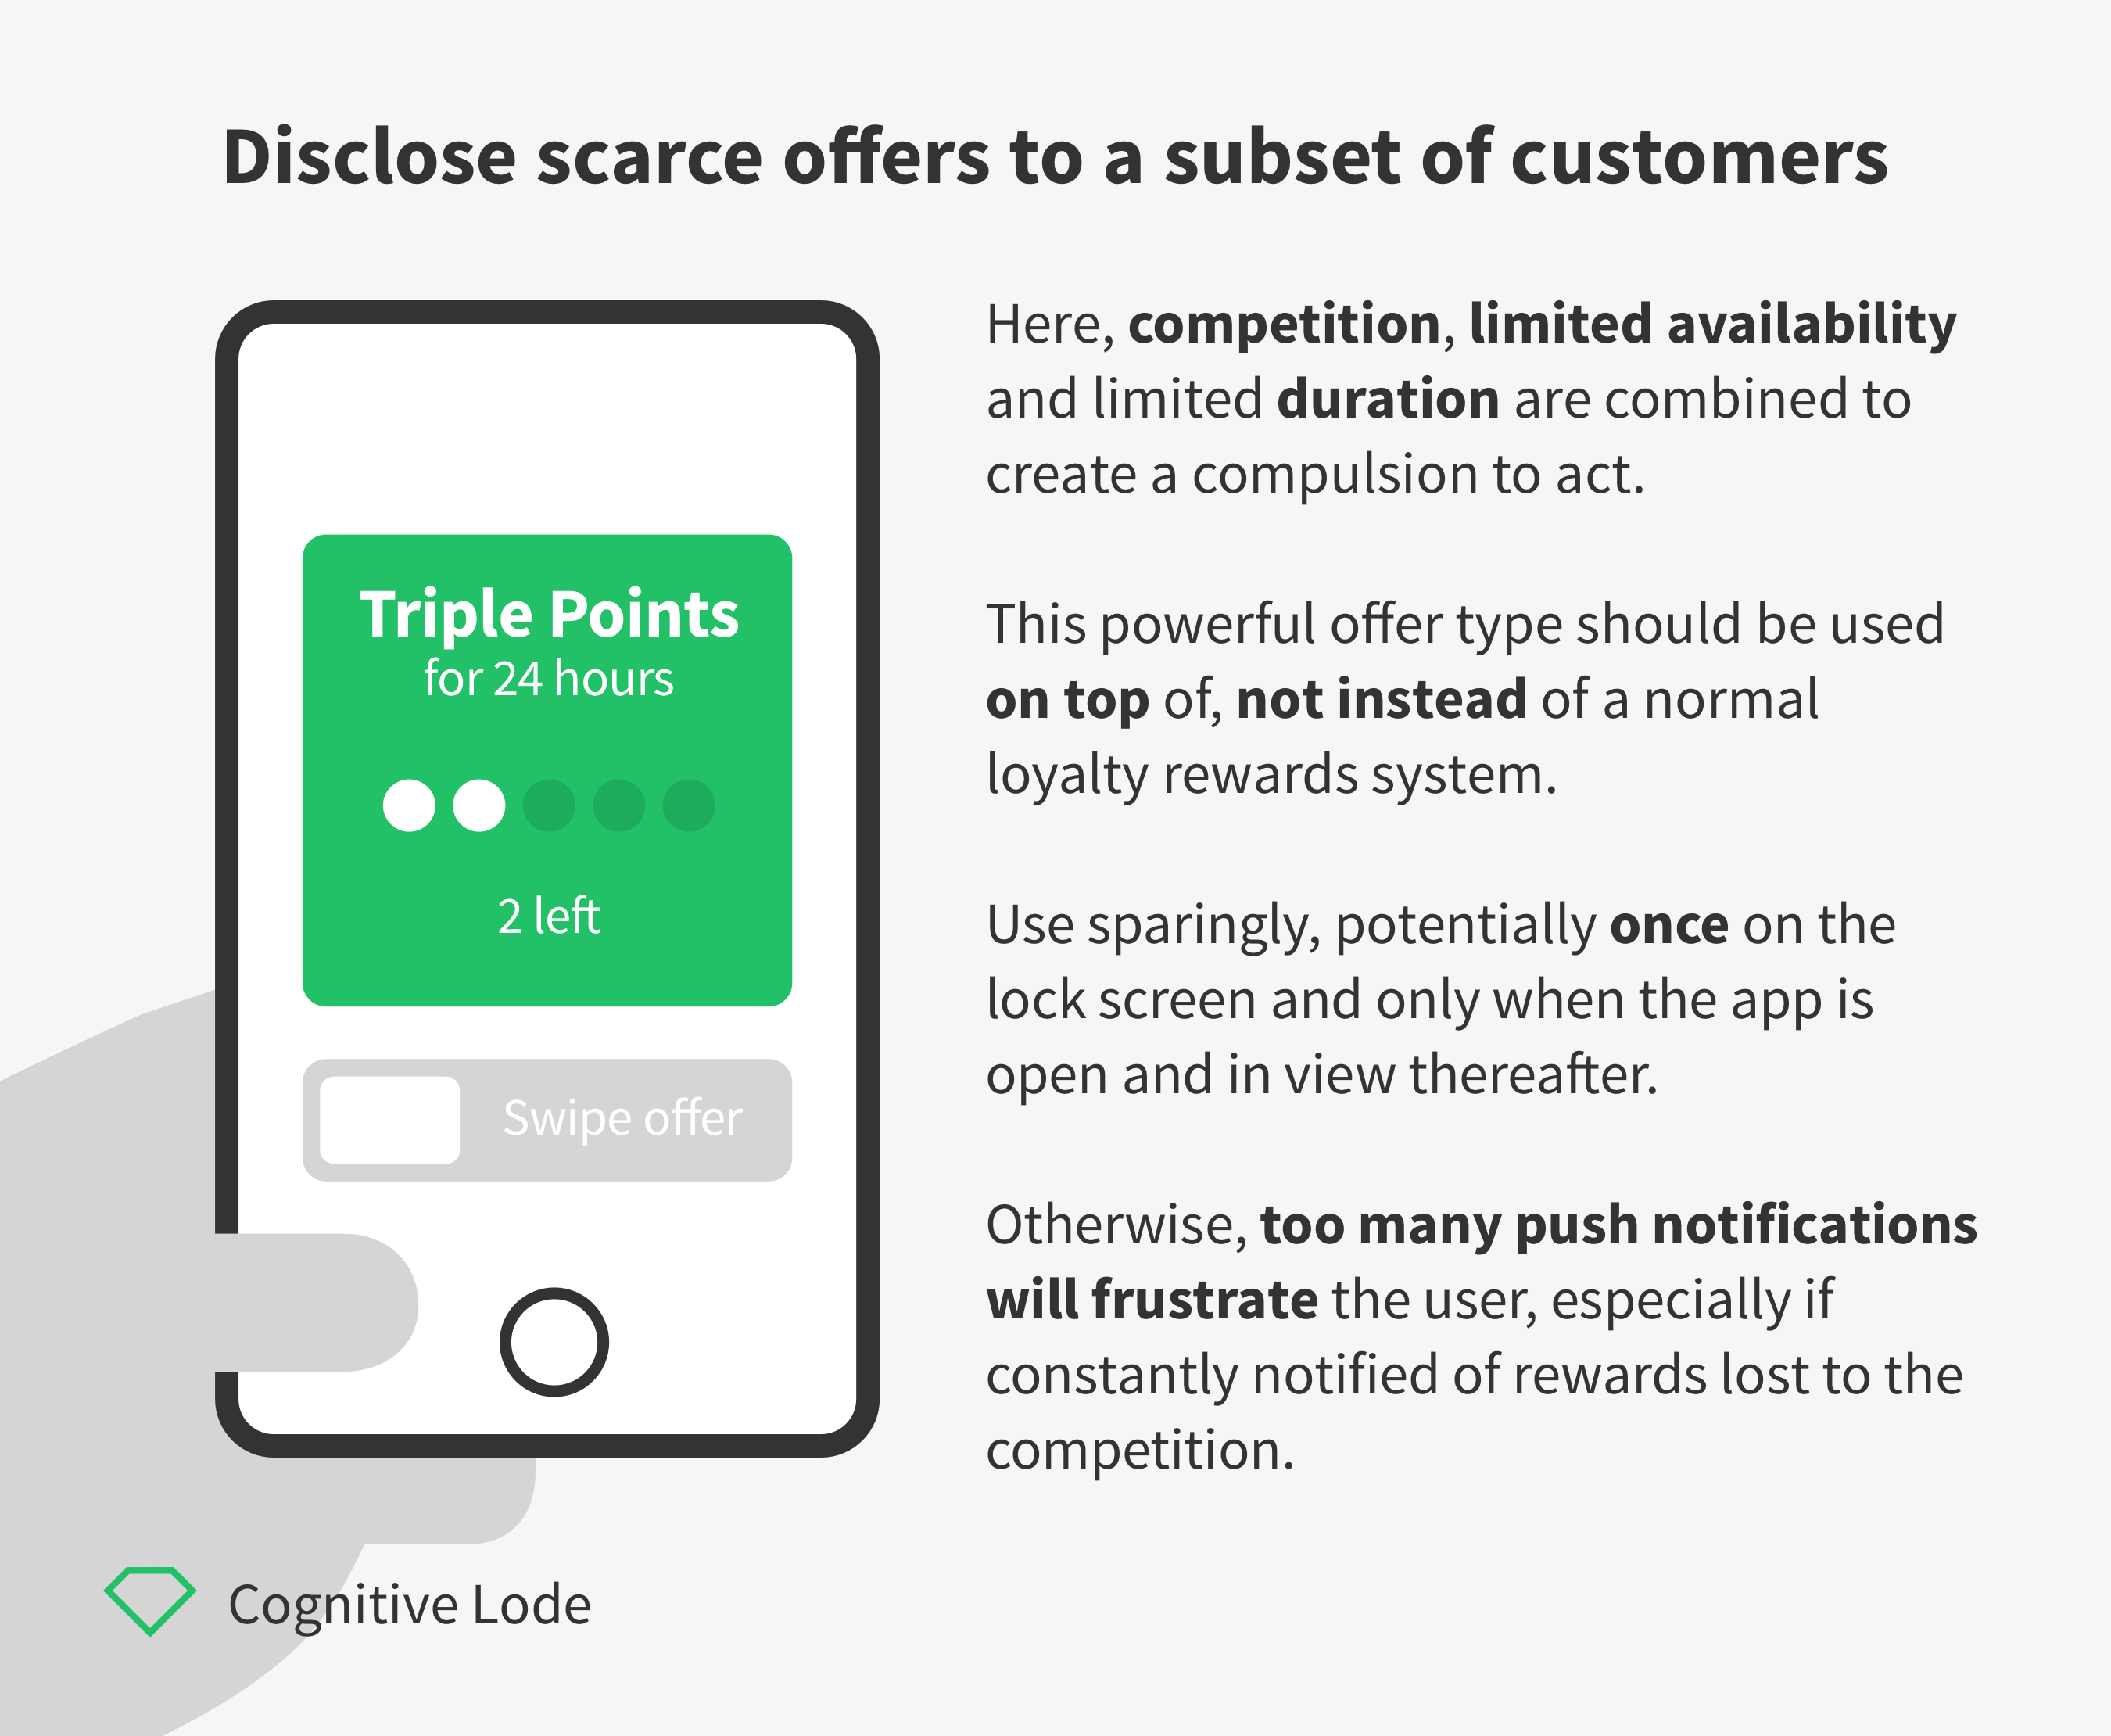 Cookie Clicker - Disclose scarce offers to a subset of customers